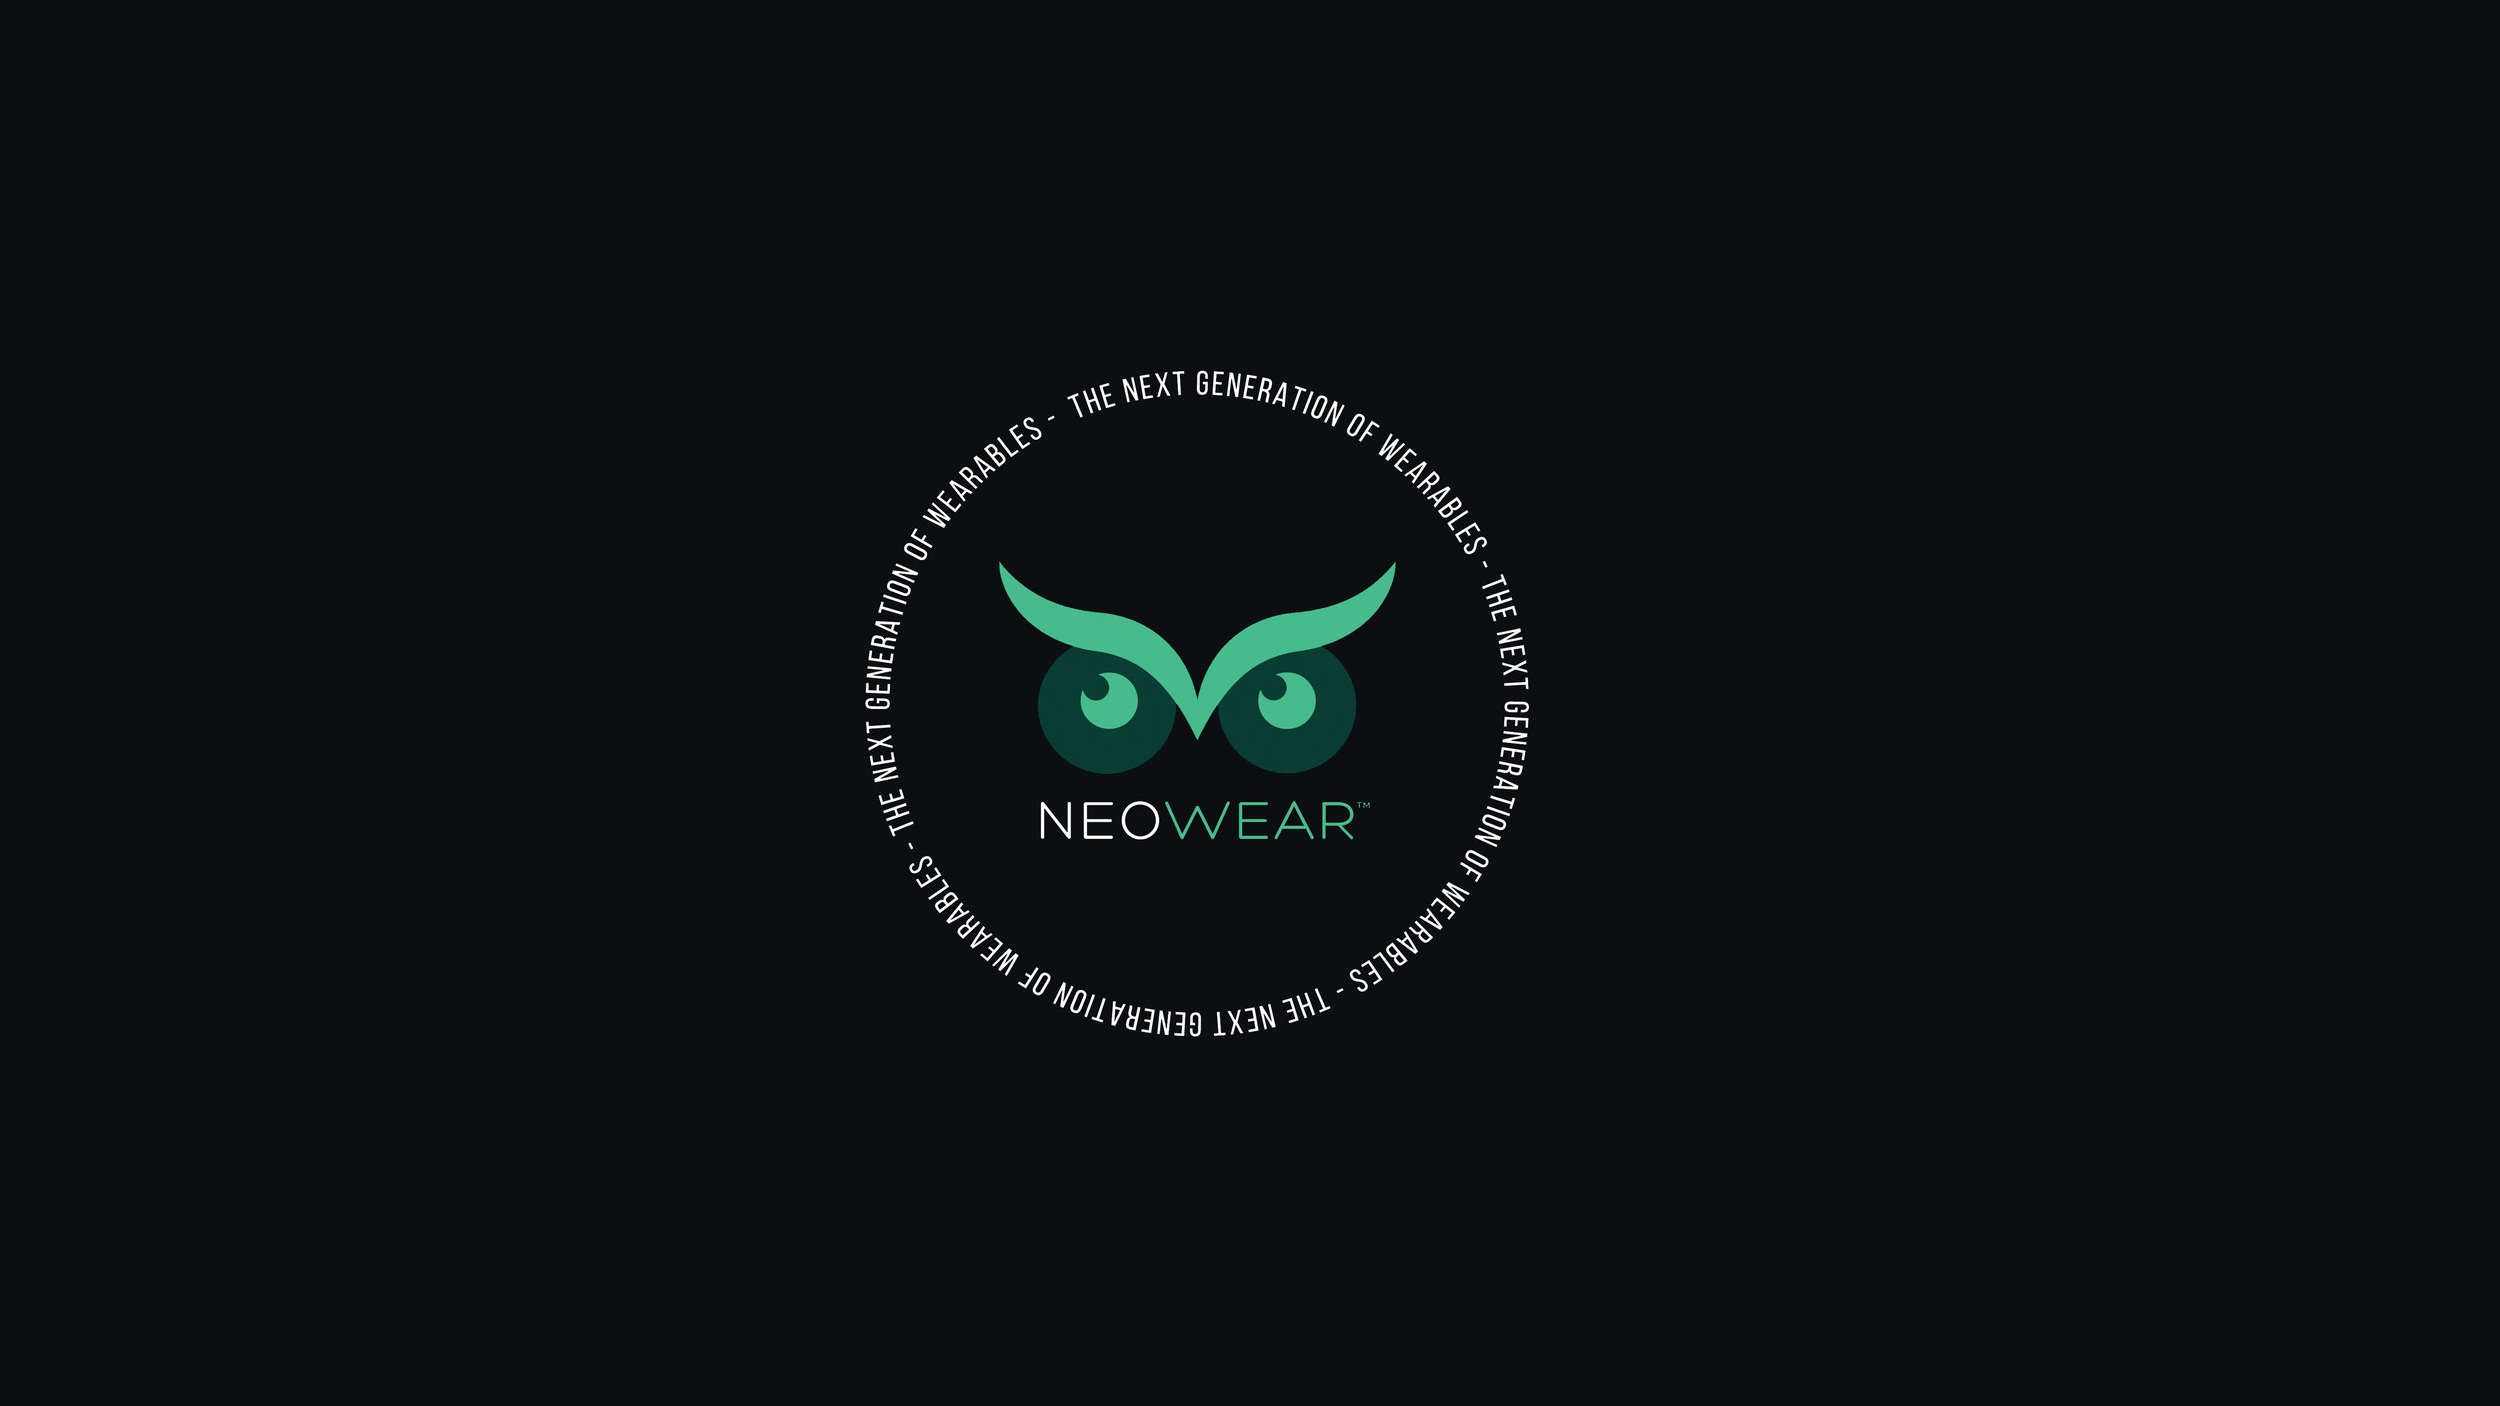 neowear - COMING soon - A smart-hat system designed for everyday life that functions both as a customizable lighting system and an audio-visual controller.